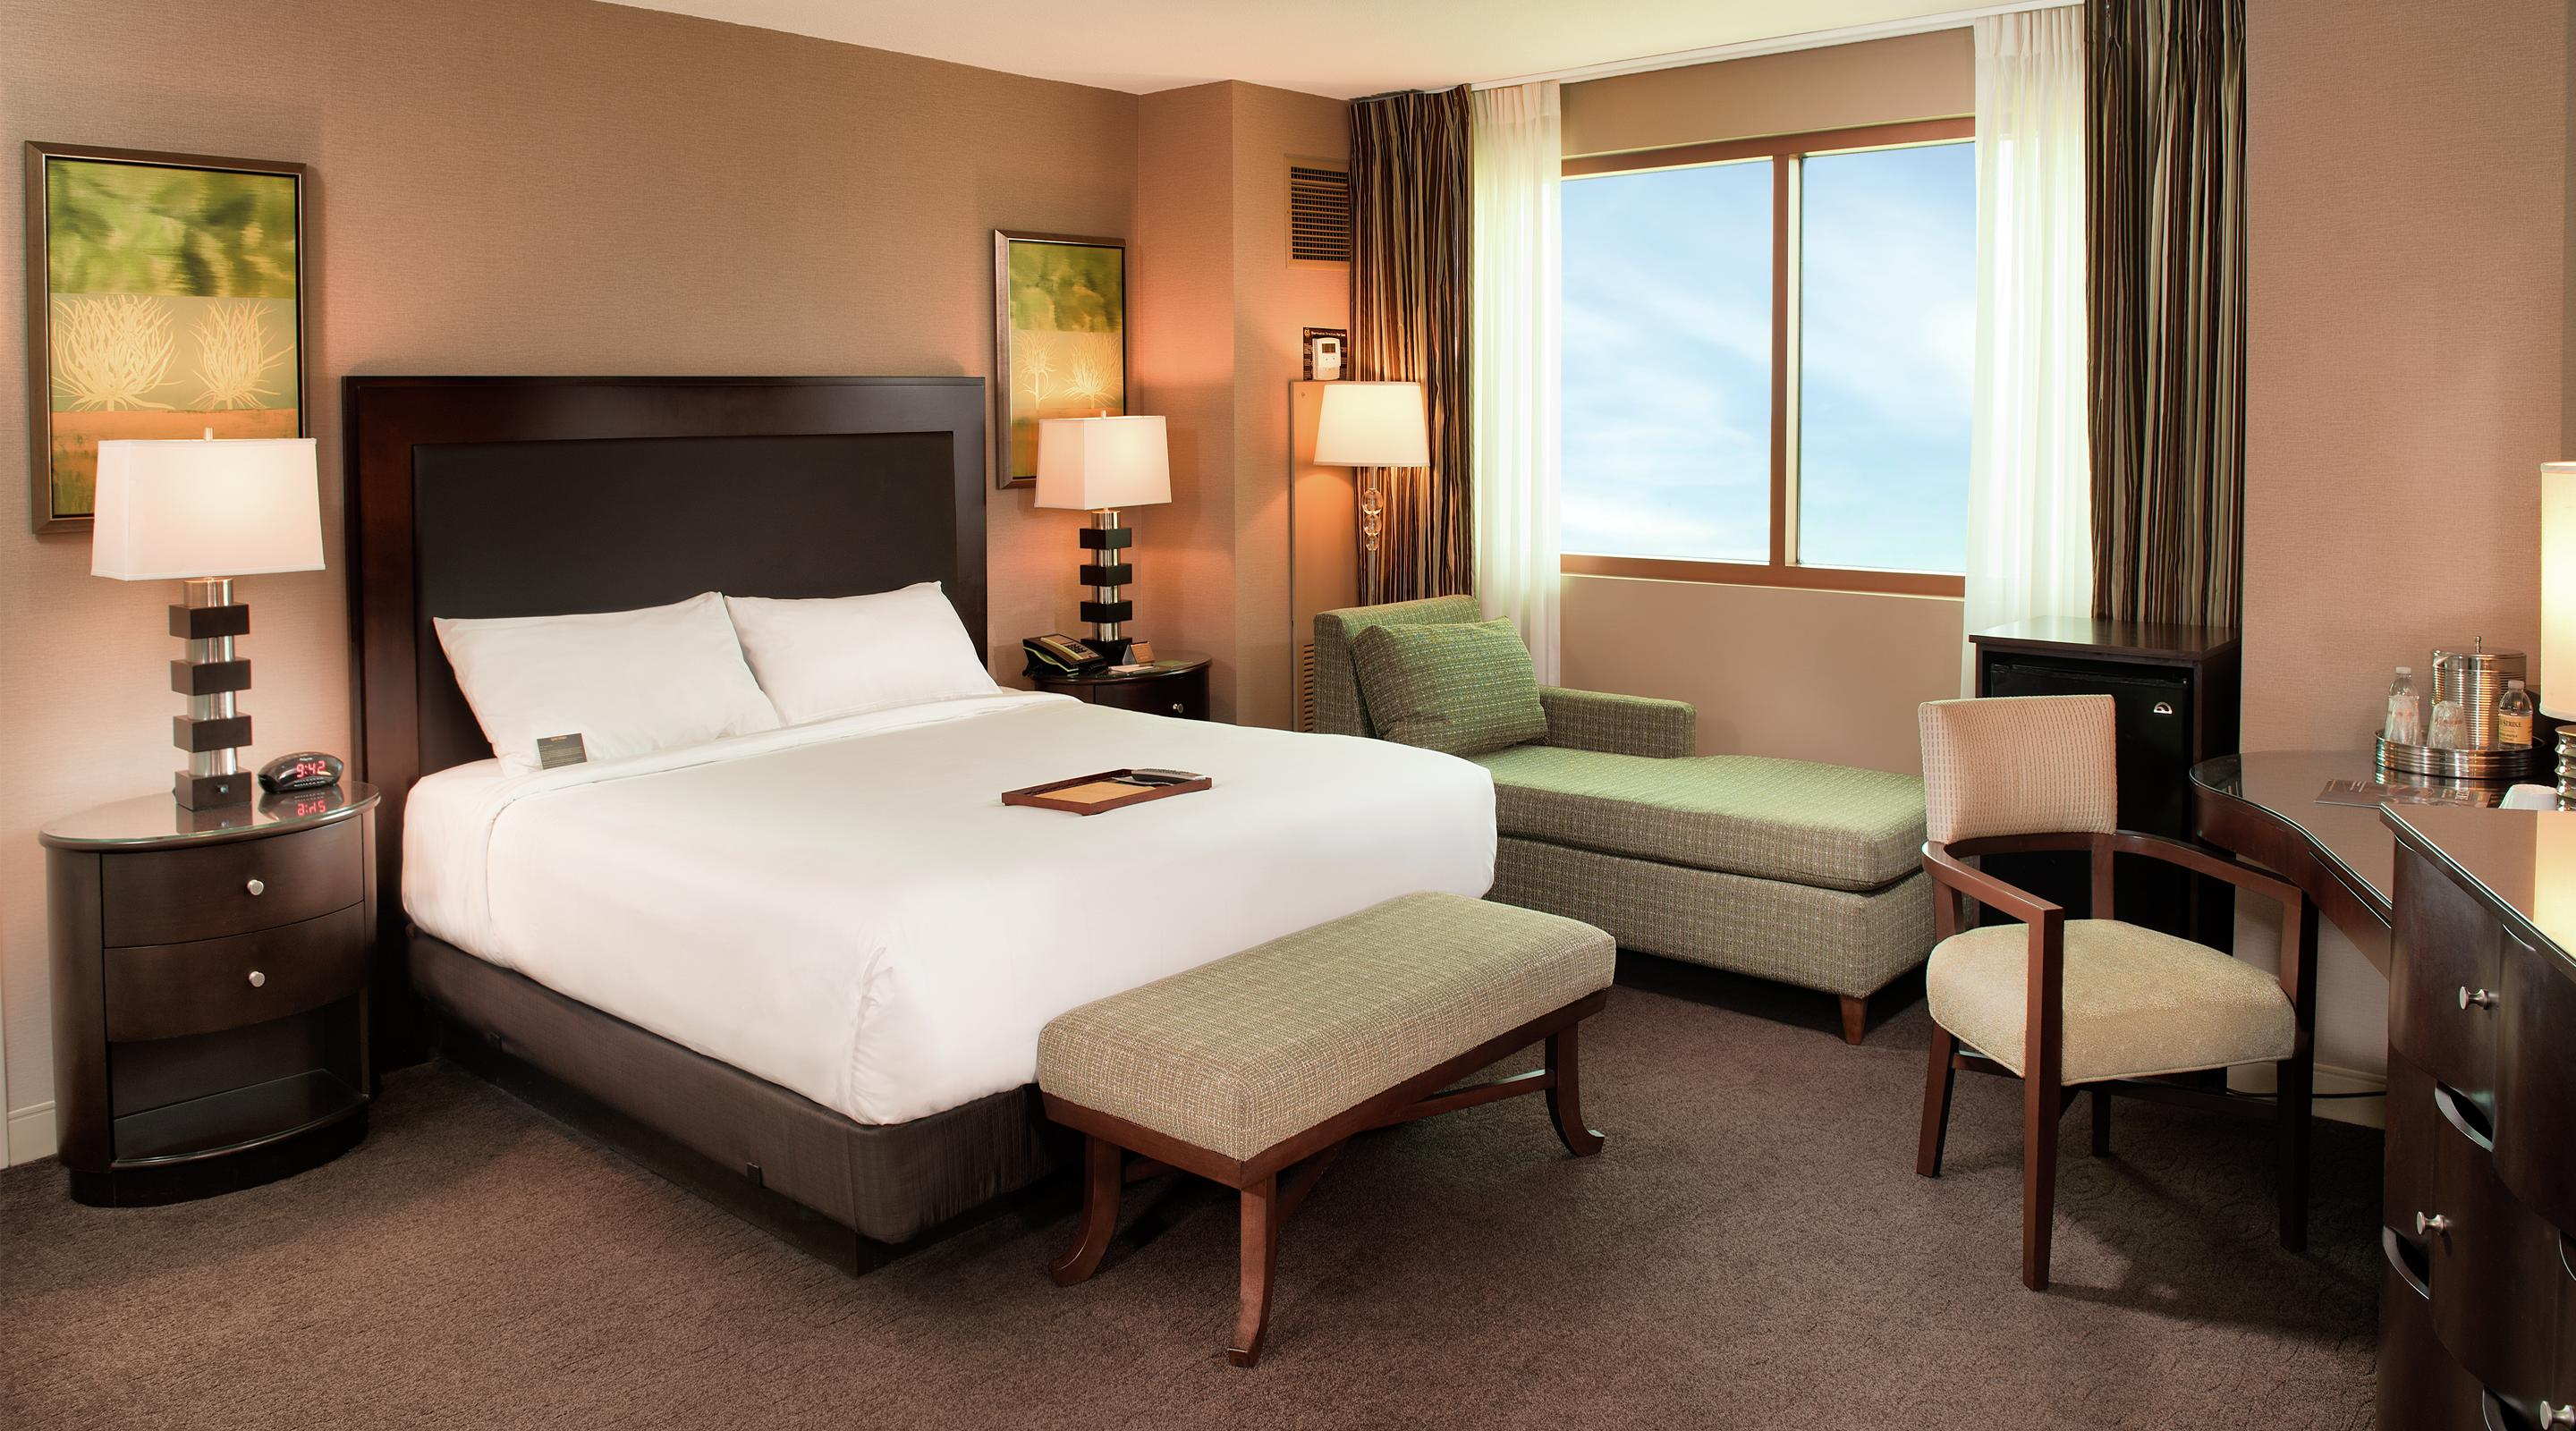 Escape to the utmost in comfort, with everything you need for an exciting vacation.